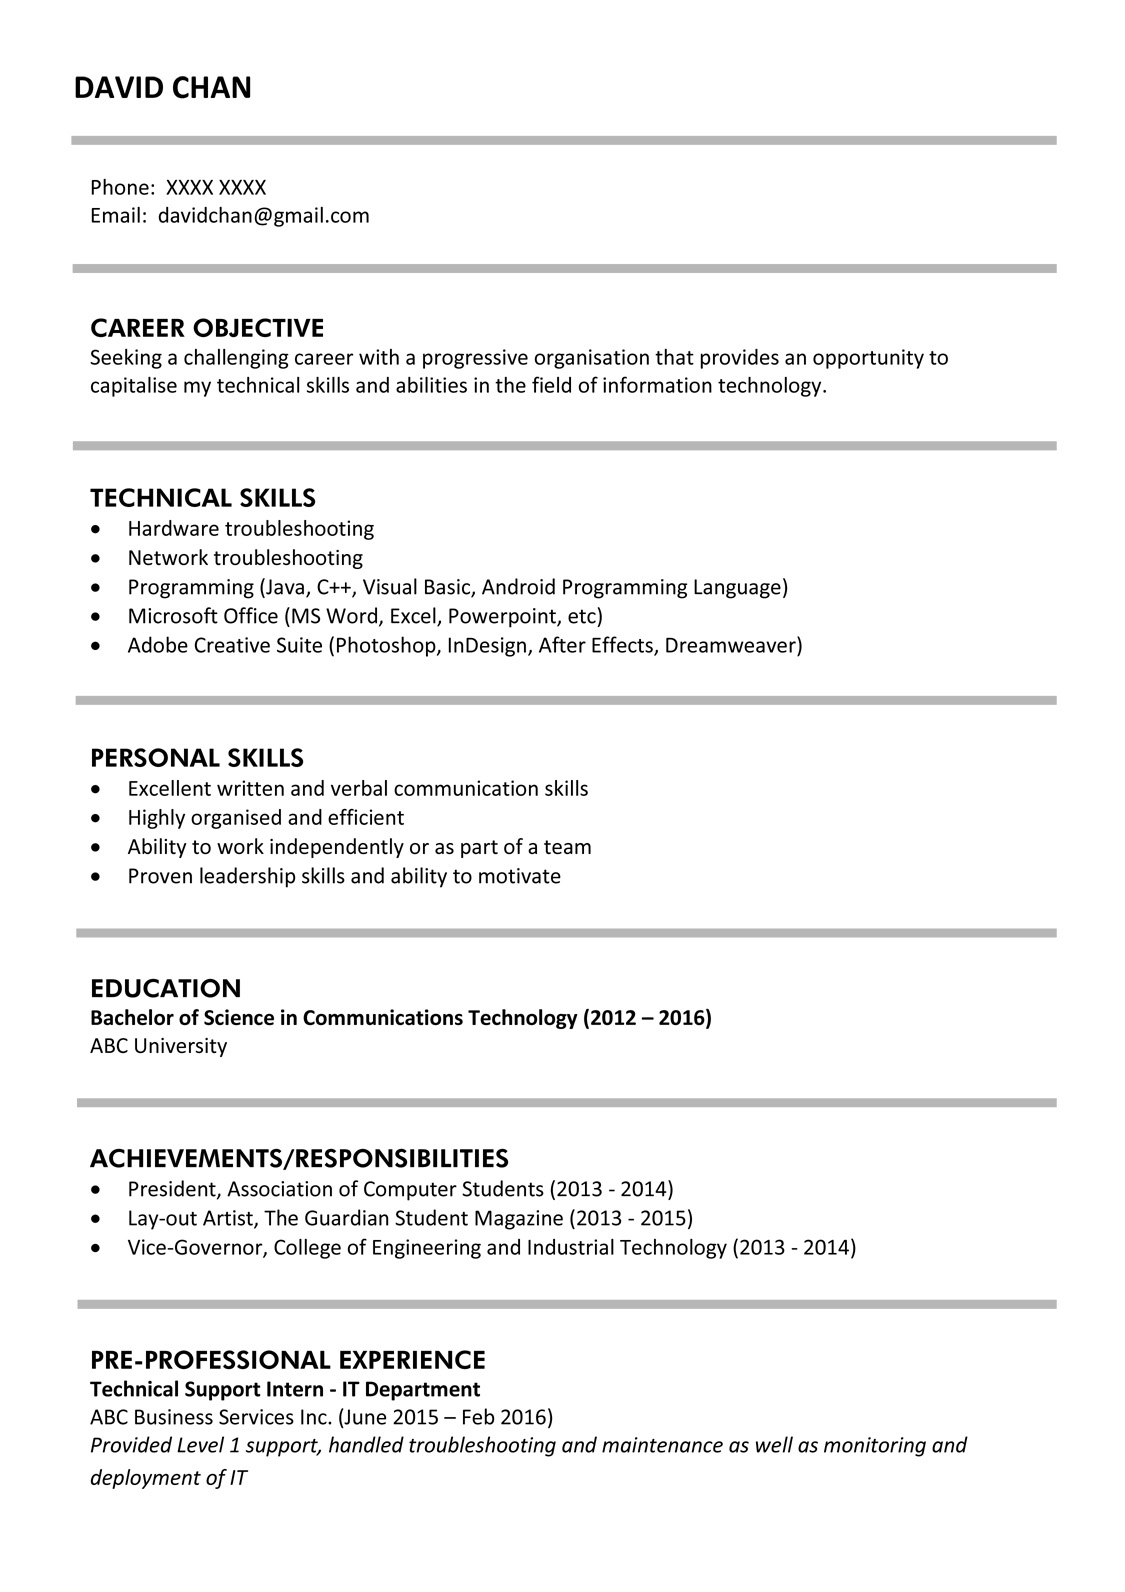 sample resume format 1 - Sample Picture Of A Resume